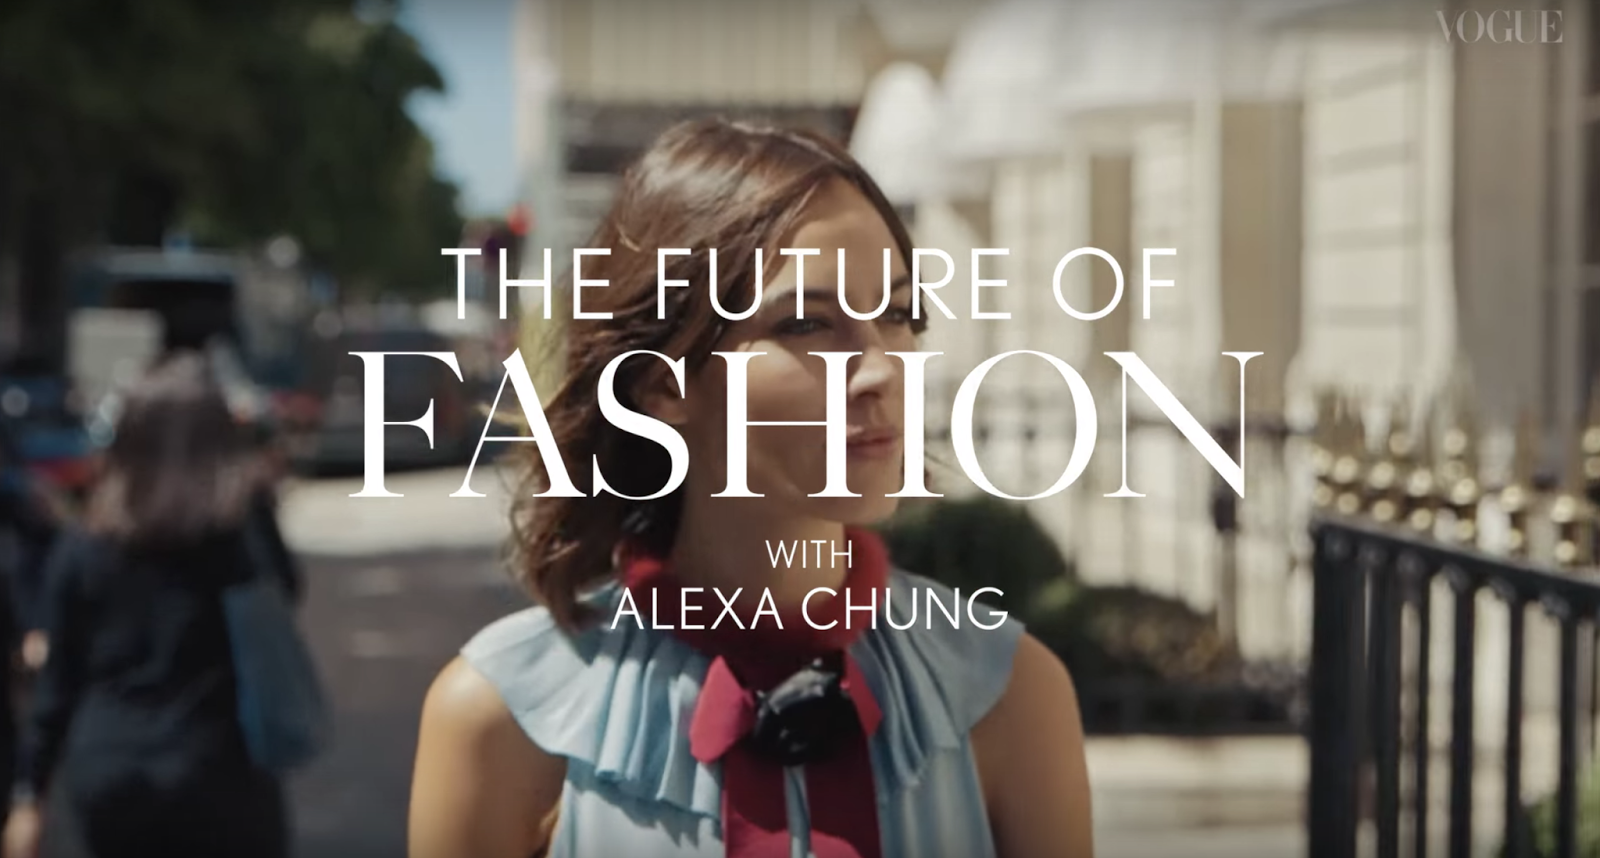 alexa chung british vogue youtube fashion fblogger fbloggers youtuber bblogger beauty lifestyle kirstie pickering thoughts review magazine opinion